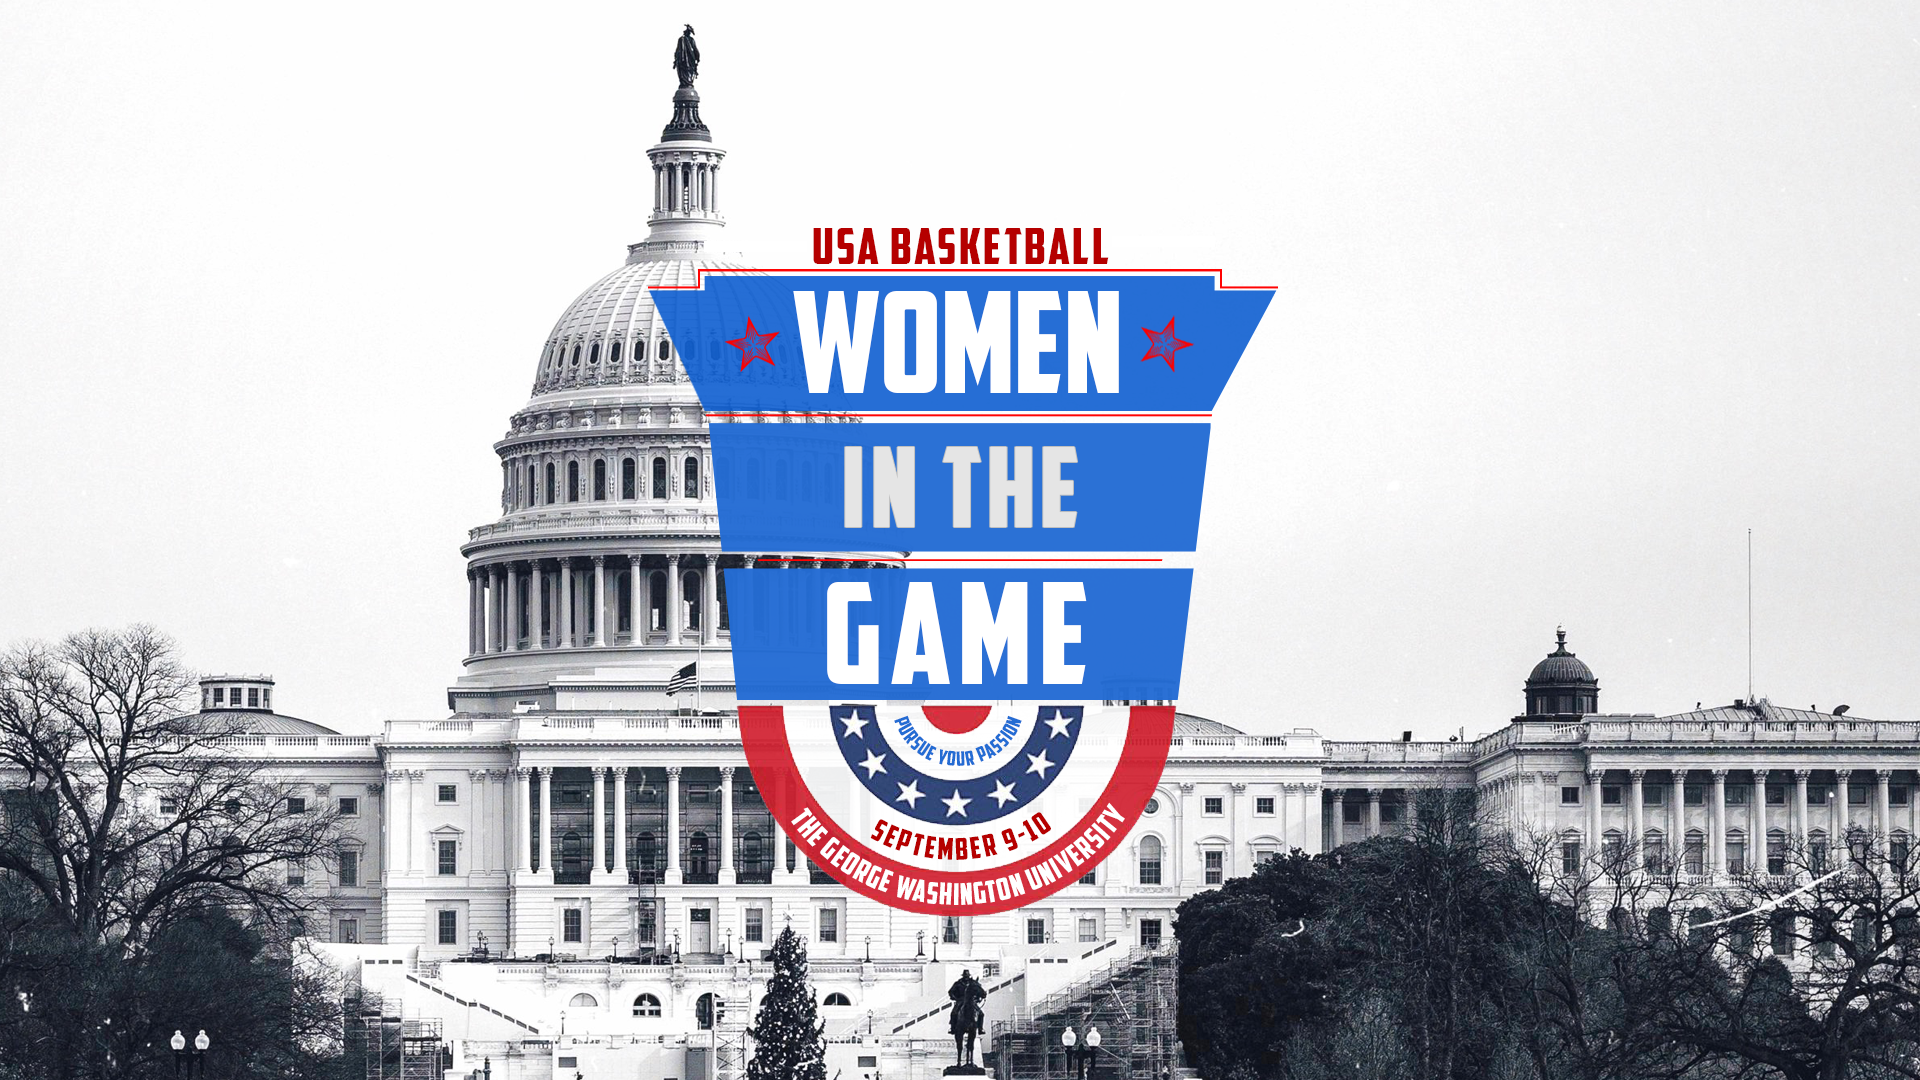 USA Basketball D.C. Women in the Game